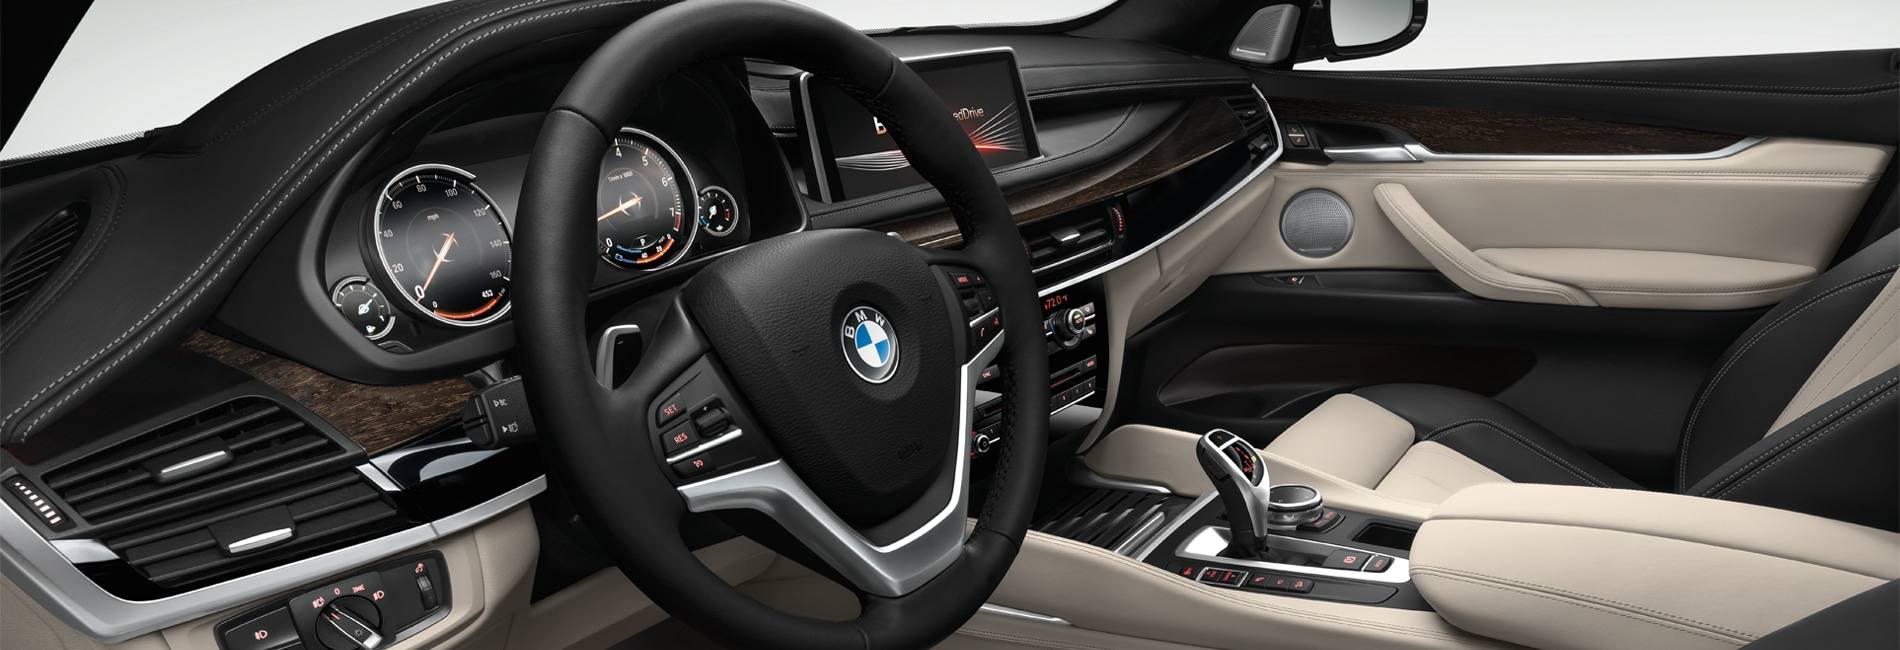 2018 BMW X6 Interior Features